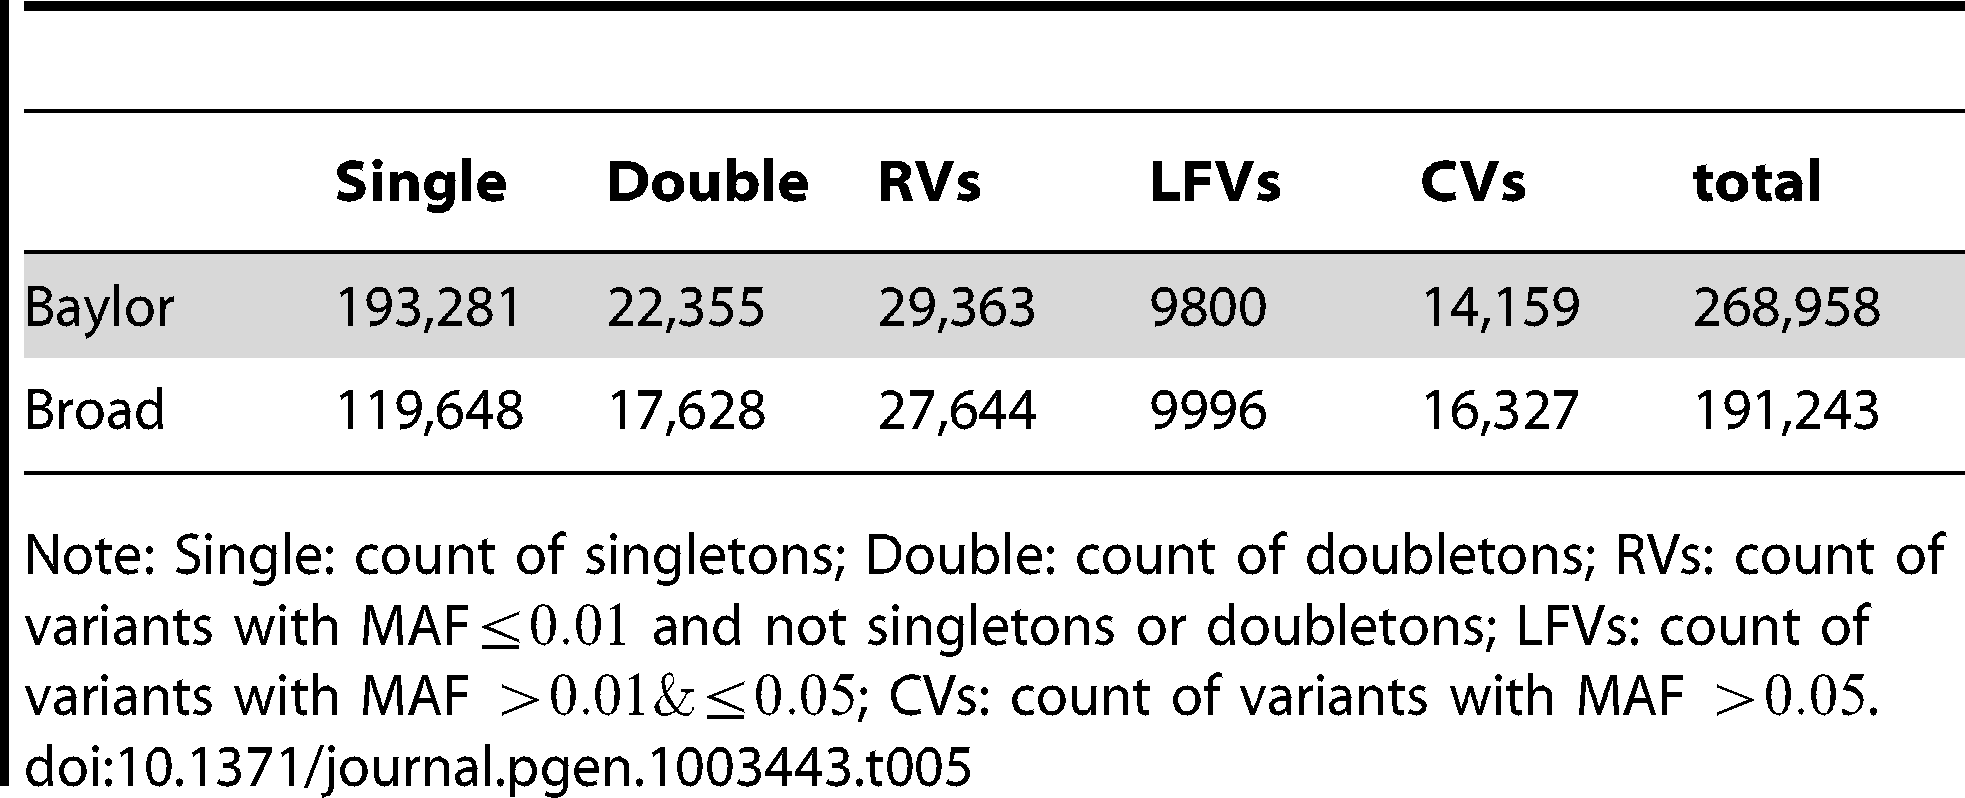 Counts of non-synonymous variants in Baylor and Broad before filtering.